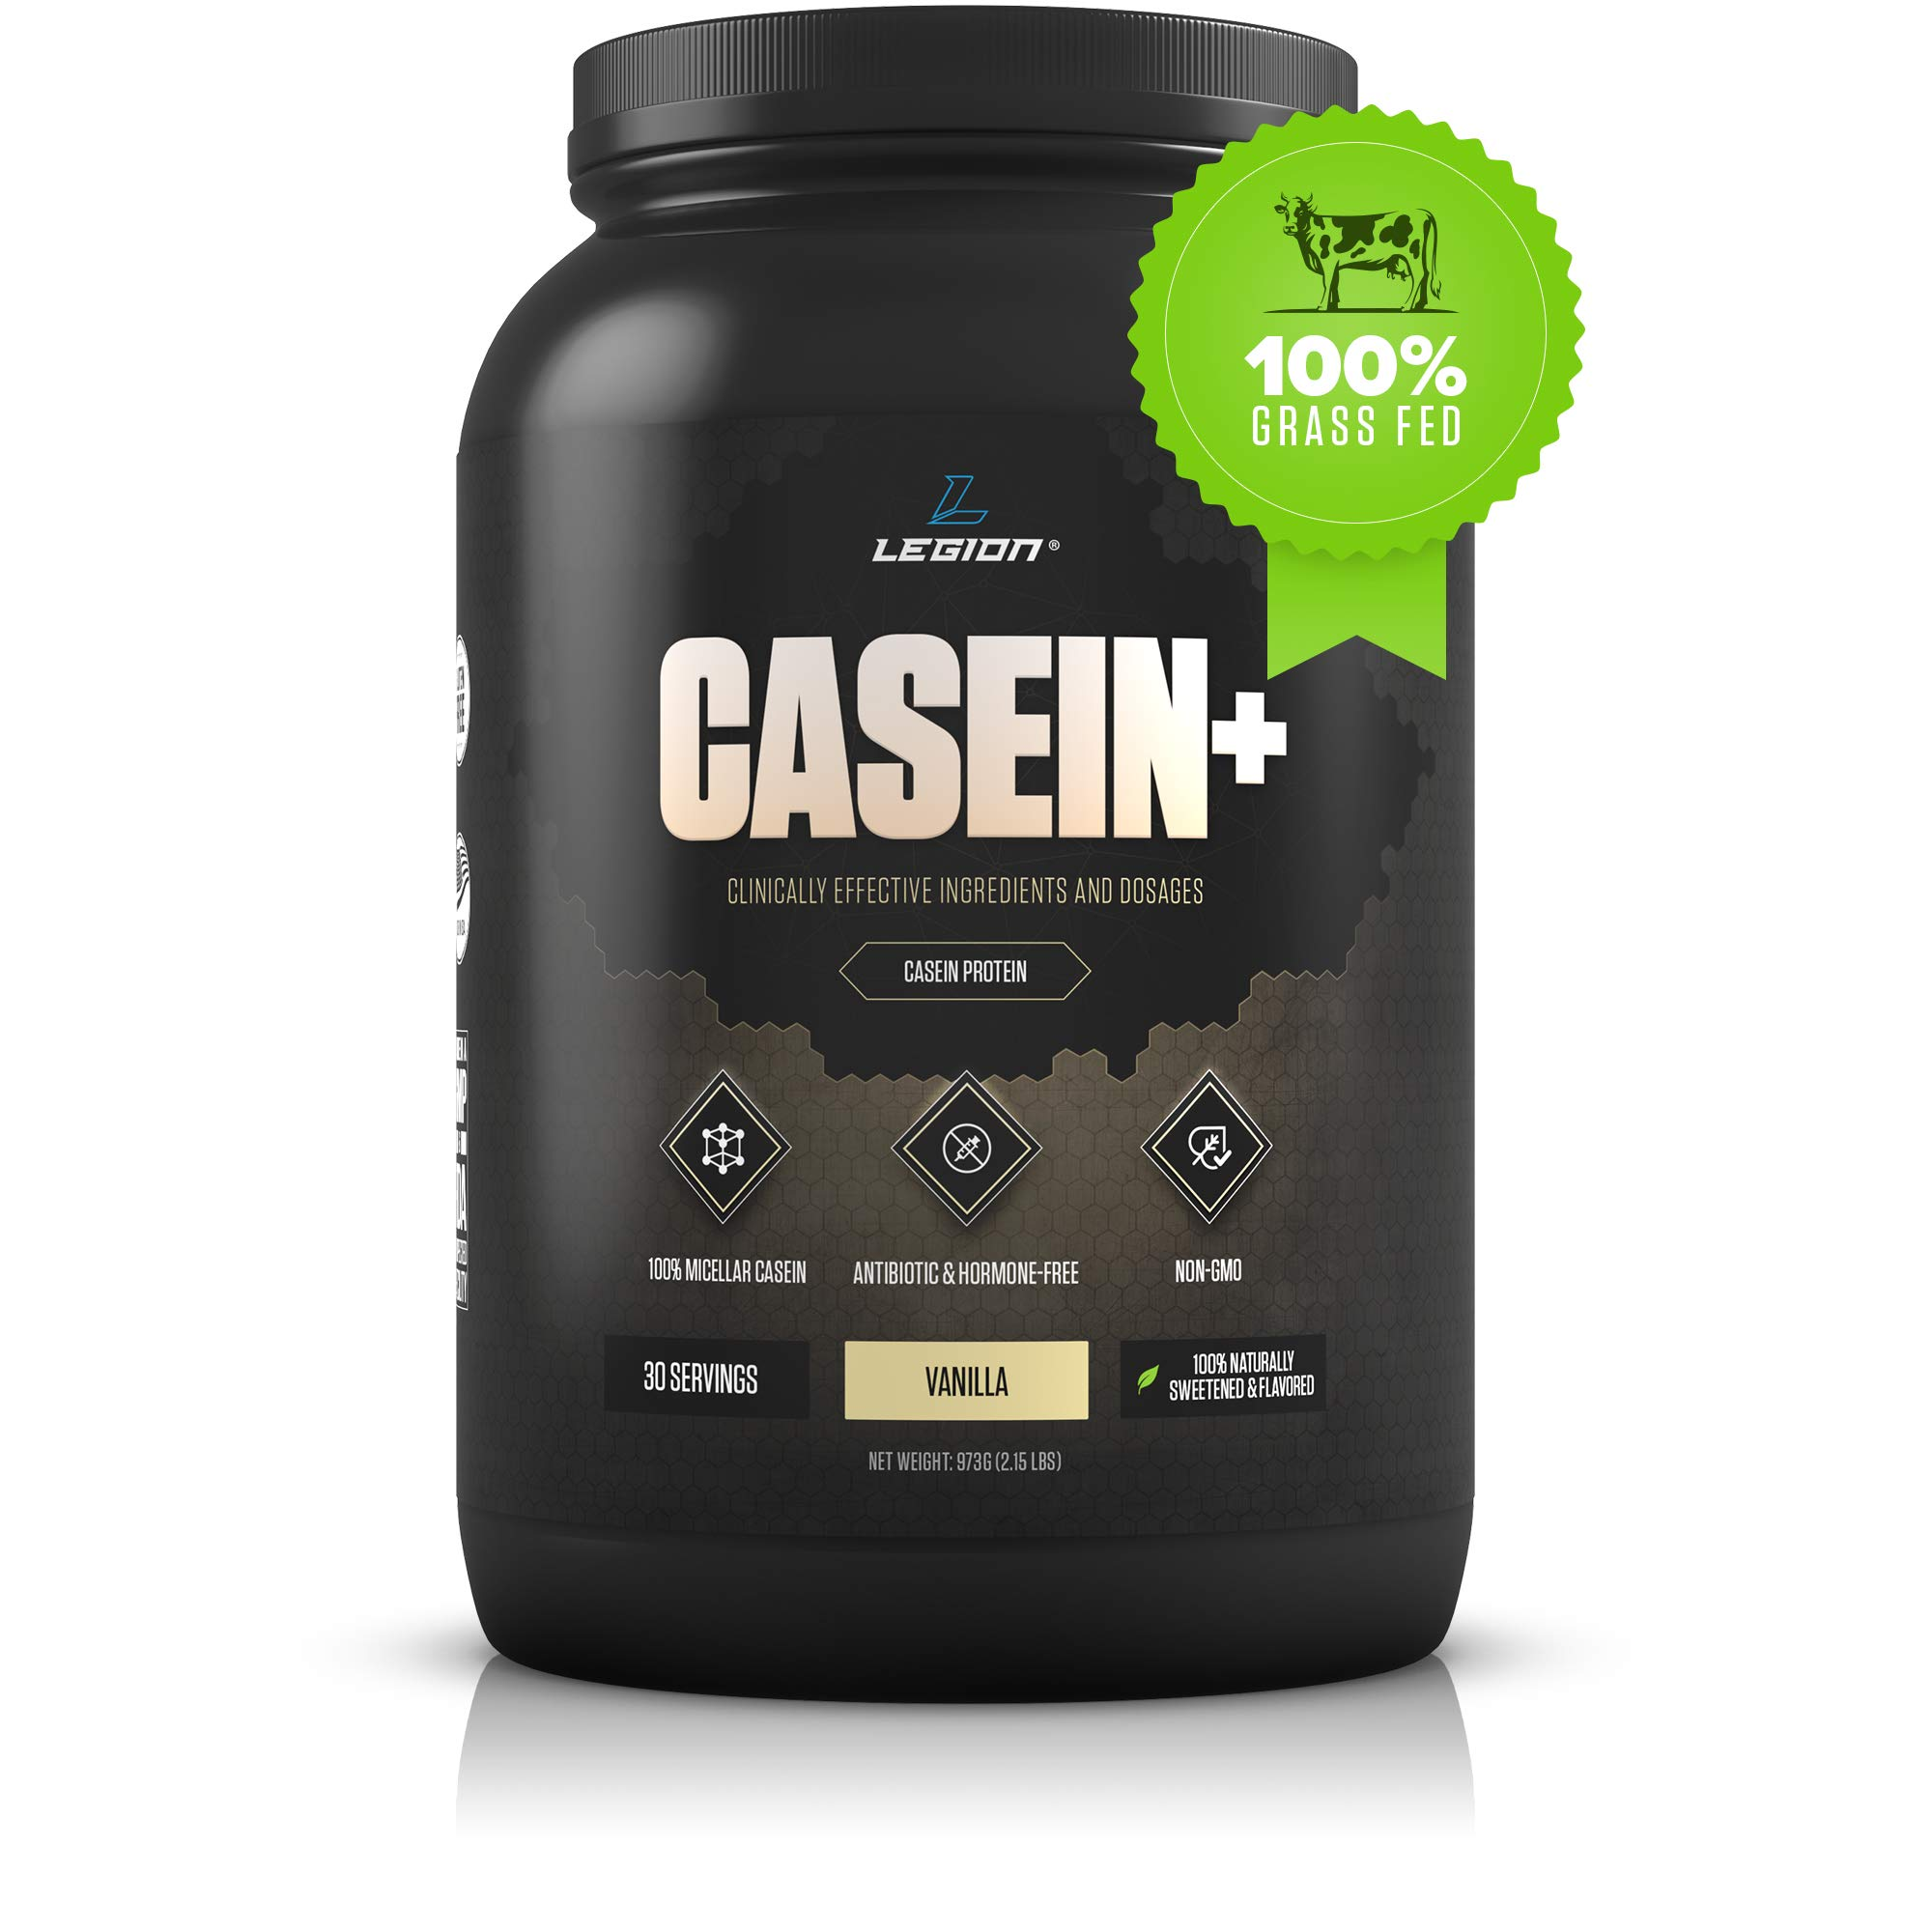 Legion Casein+ Vanilla Pure Micellar Casein Protein Powder - Non-GMO Grass Fed Cow Milk, Natural Flavors & Stevia, Low Carb, Keto Friendly - Best Pre Sleep (PM) Slow Release Muscle Recovery Drink 2lb by Legion Athletics